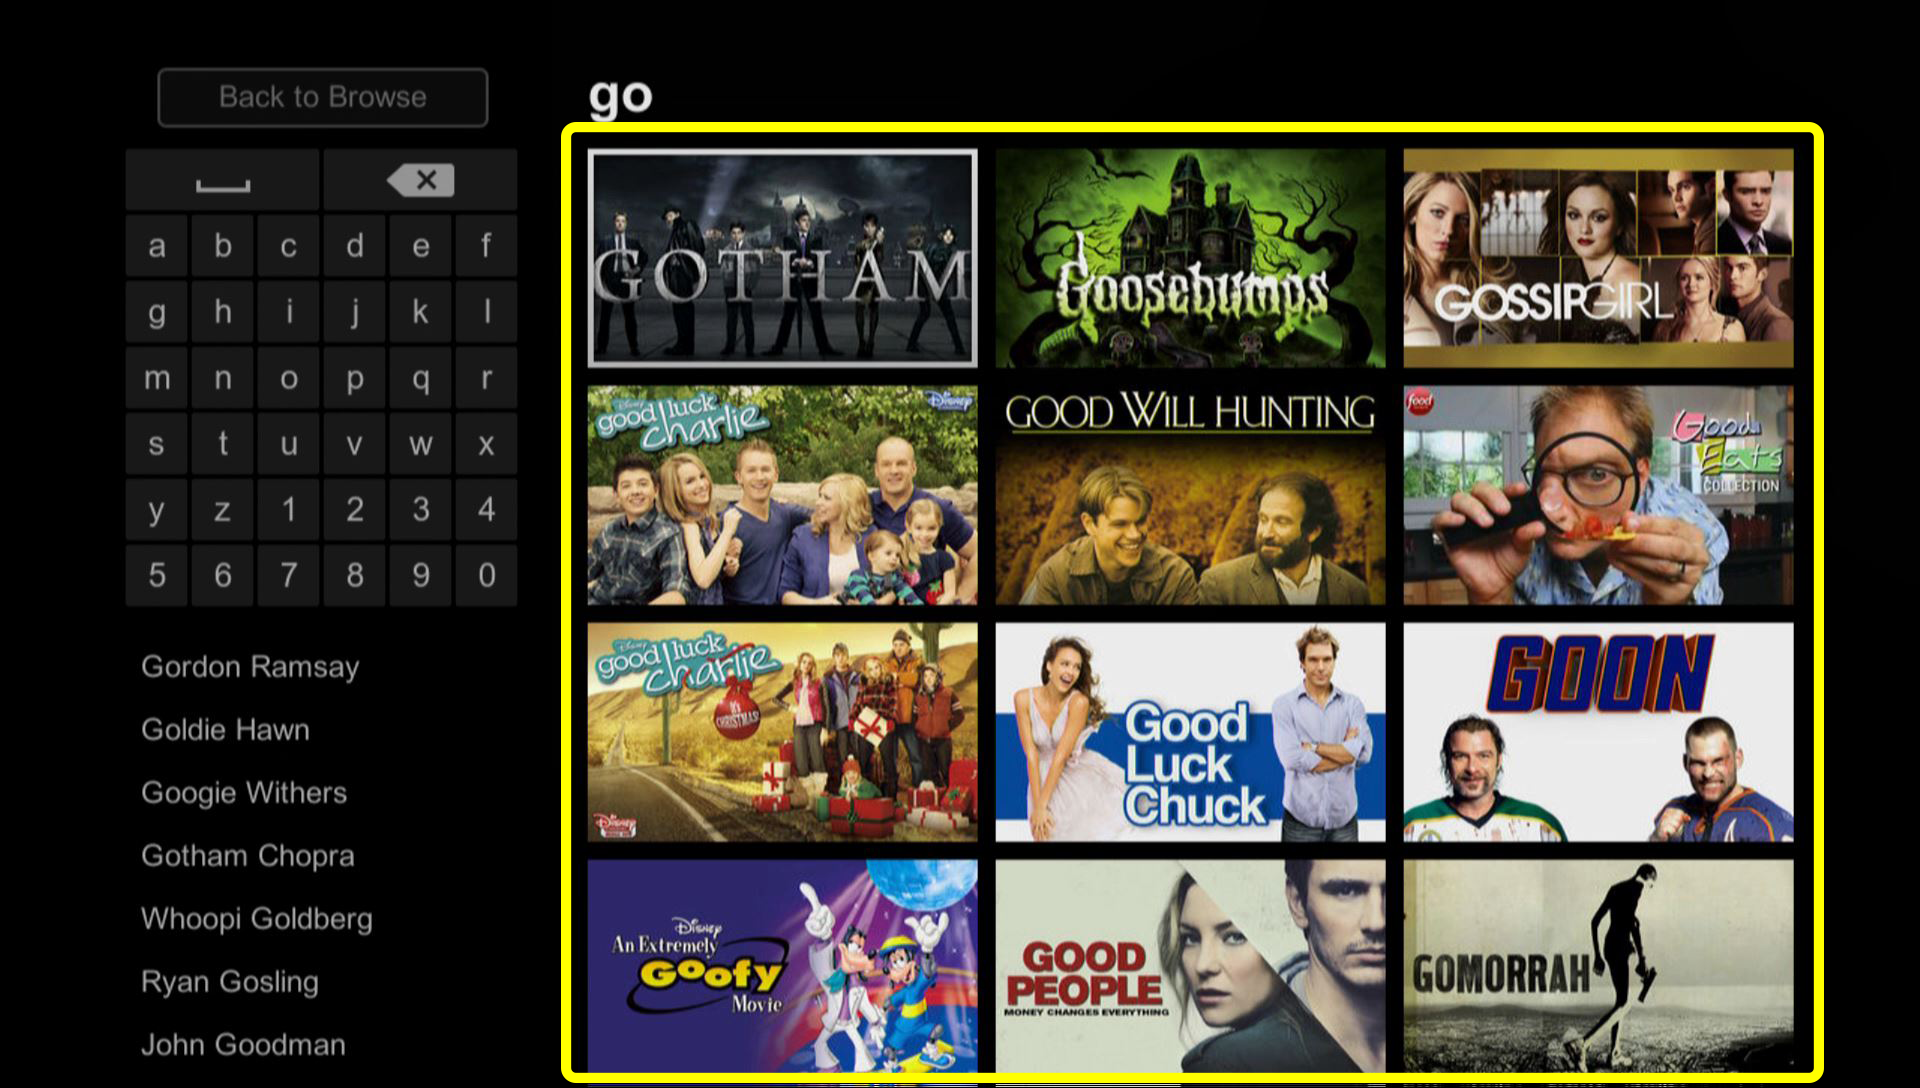 Grid of Netflix content (use the remote to move through the grid of menu options)